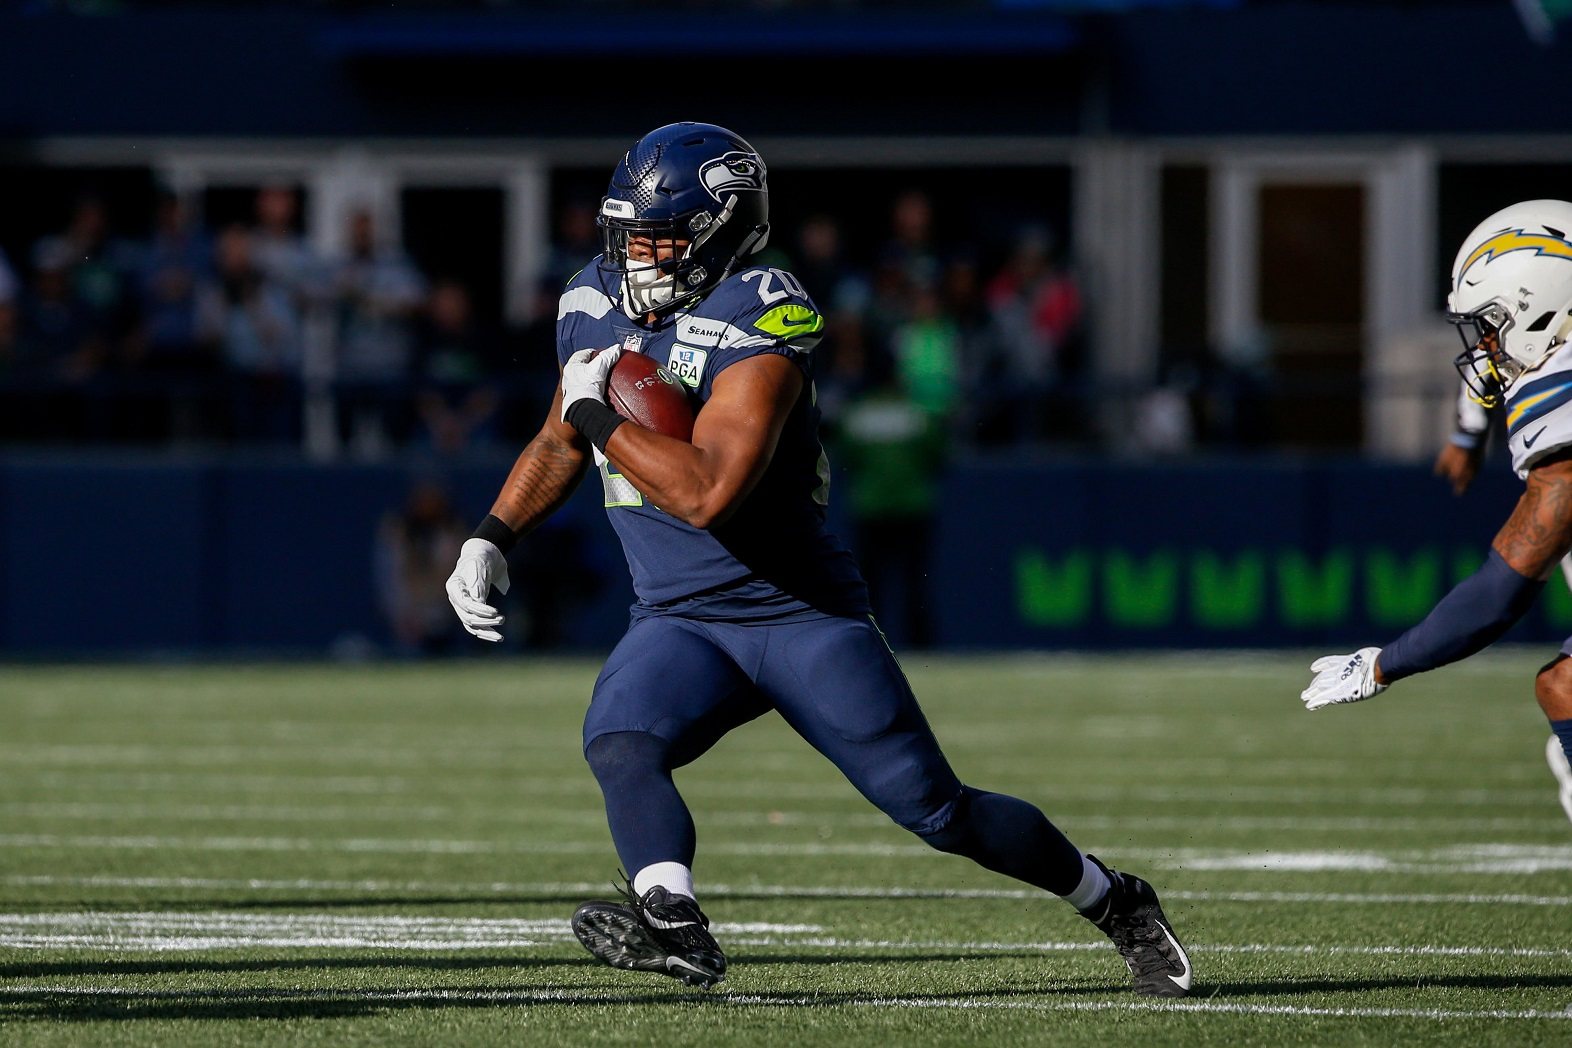 Week 11 Fantasy Football Sleepers Potential Breakouts Based On The